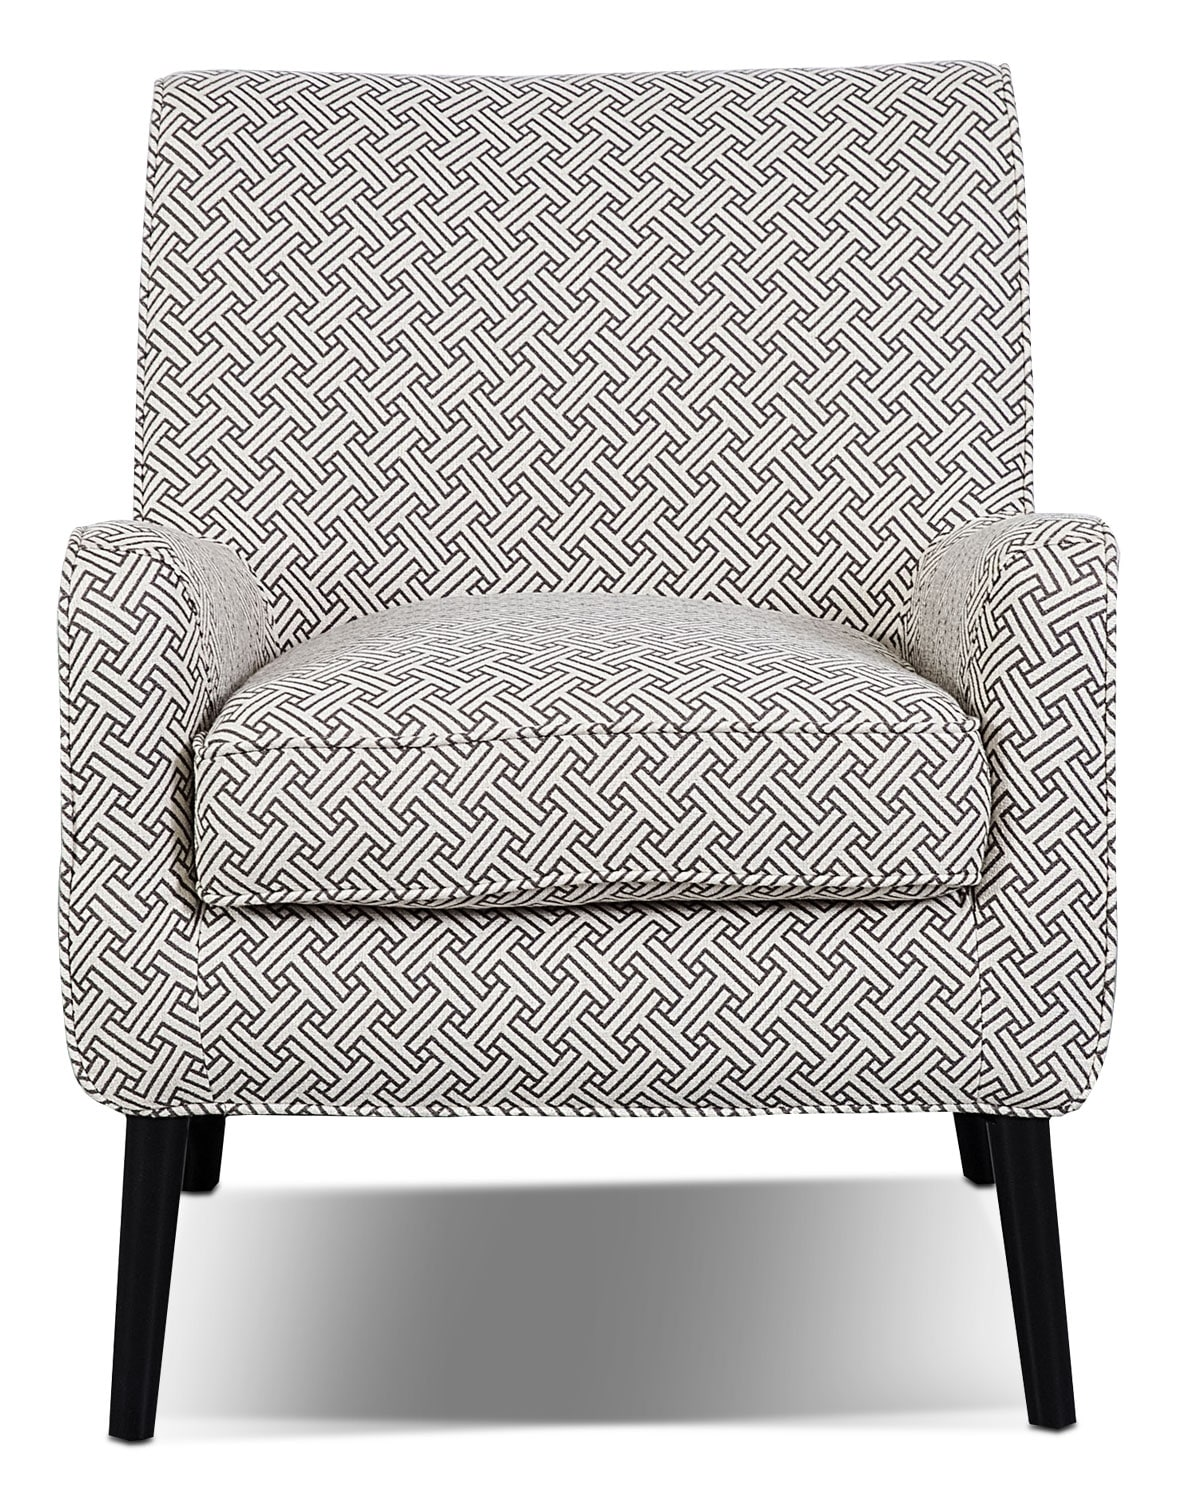 Galo Linen-Like Fabric Accent Chair - Stencil